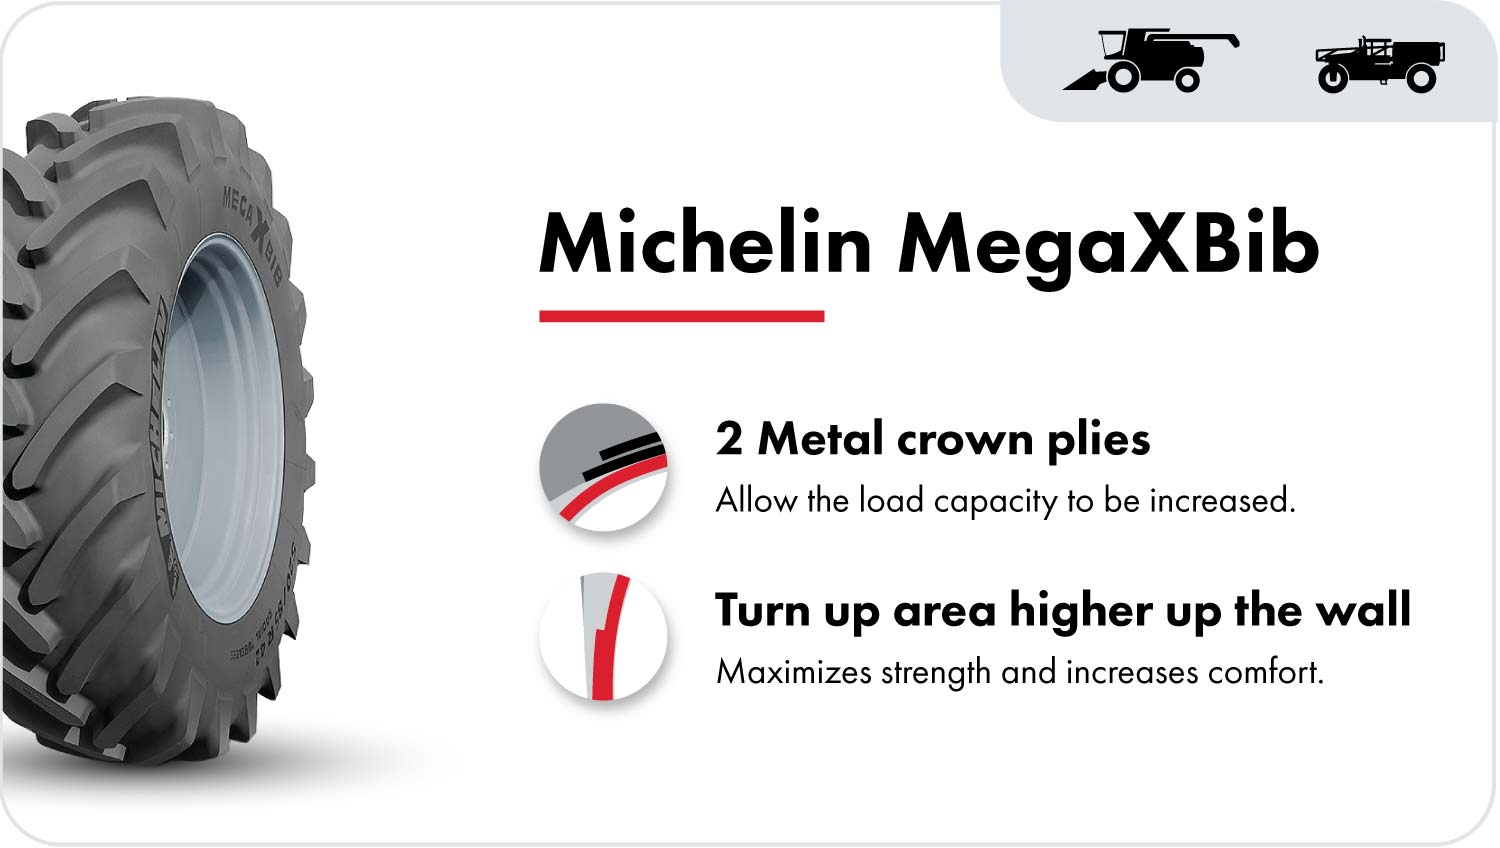 The Michelin MegaXBib combine tire features 2 metal crown plies and a higher turn up area for a stronger tire with increased load capacity and operator comfort.